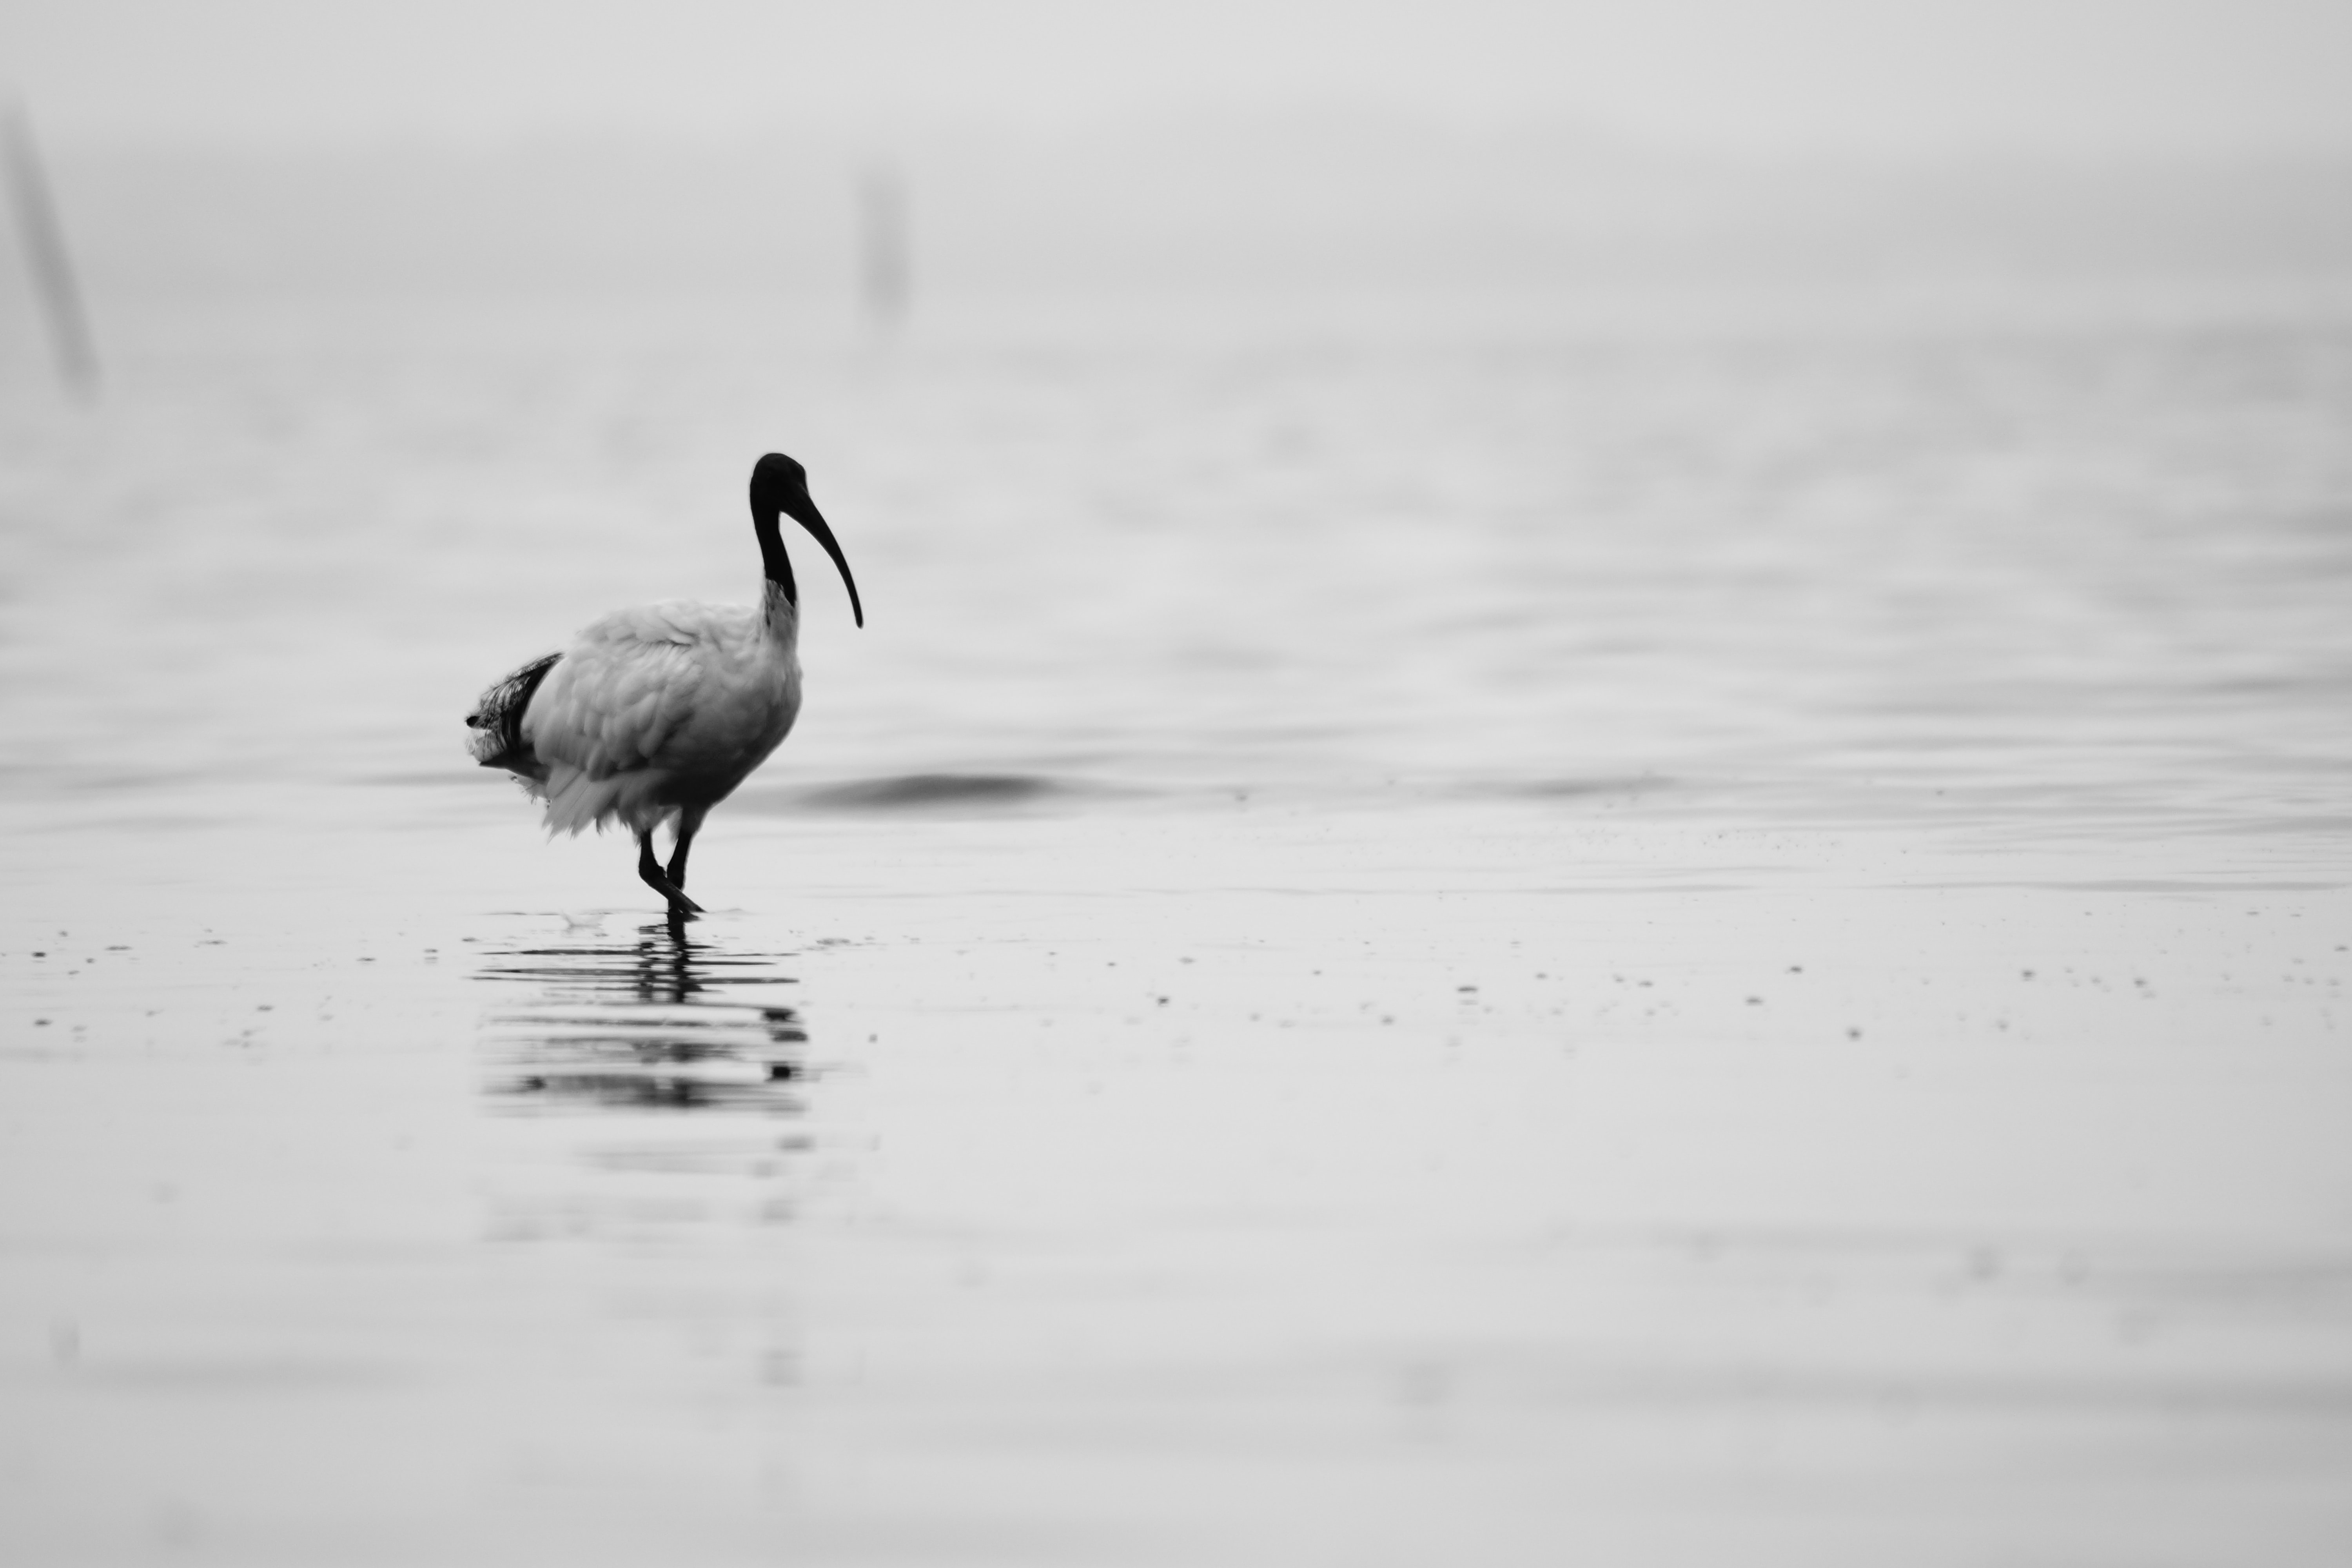 white and black bird in body of water